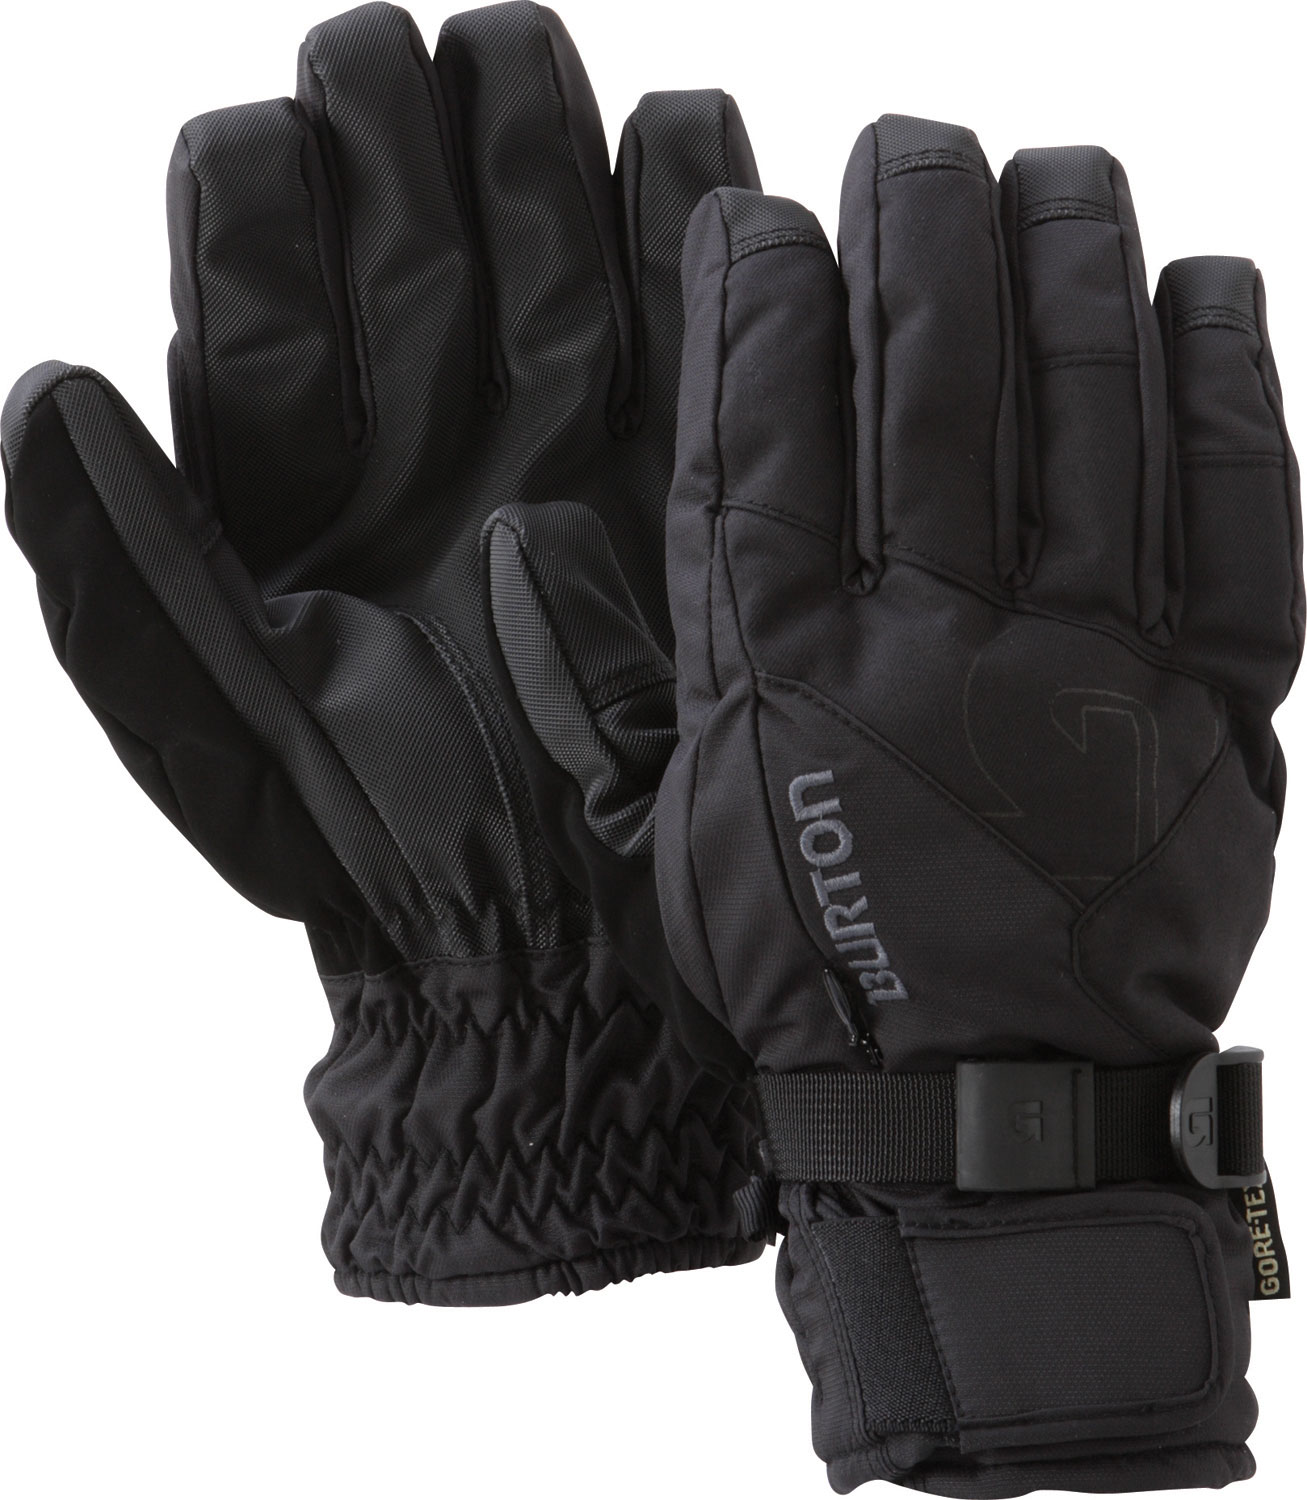 Snowboard The life of a glove is not easy. More than any other part of your riding kit, gloves have the most contact with the elements. With that in mind, the Burton GORE-TEX Glove is so overbuilt, you'll wish you could put your whole body in it, not just your hand (get your mind out of the gutter!). DRYRIDE Ultrashell 2L fabric, and a Guaranteed To Keep You Dry GORE-TEX waterproof/breathable insert protect this Thermacore insulated glove from the gnarliest weather. A removable four-way stretch DRYRIDE Thermex liner dries quick and lets you fine-tune your warmth, while also working great all alone when hiking, shoveling, or adjusting your bindings.Key Features of The Burton Gore Snowboard Undergloves: Pistol Grip Pre Curve Fit Removable, 4 Way Stretch DRYRIDE Thermex Liner Gore Tex Waterproof / Breathable Glove Insert Sticky Icky Grip Palm DRYRIDE Ultrashell 2-Layer Coated Fabric Soft Chamois Goggle Wipe Brushed Microfiber Lining Hidden Heater/Vent Pocket - $41.95